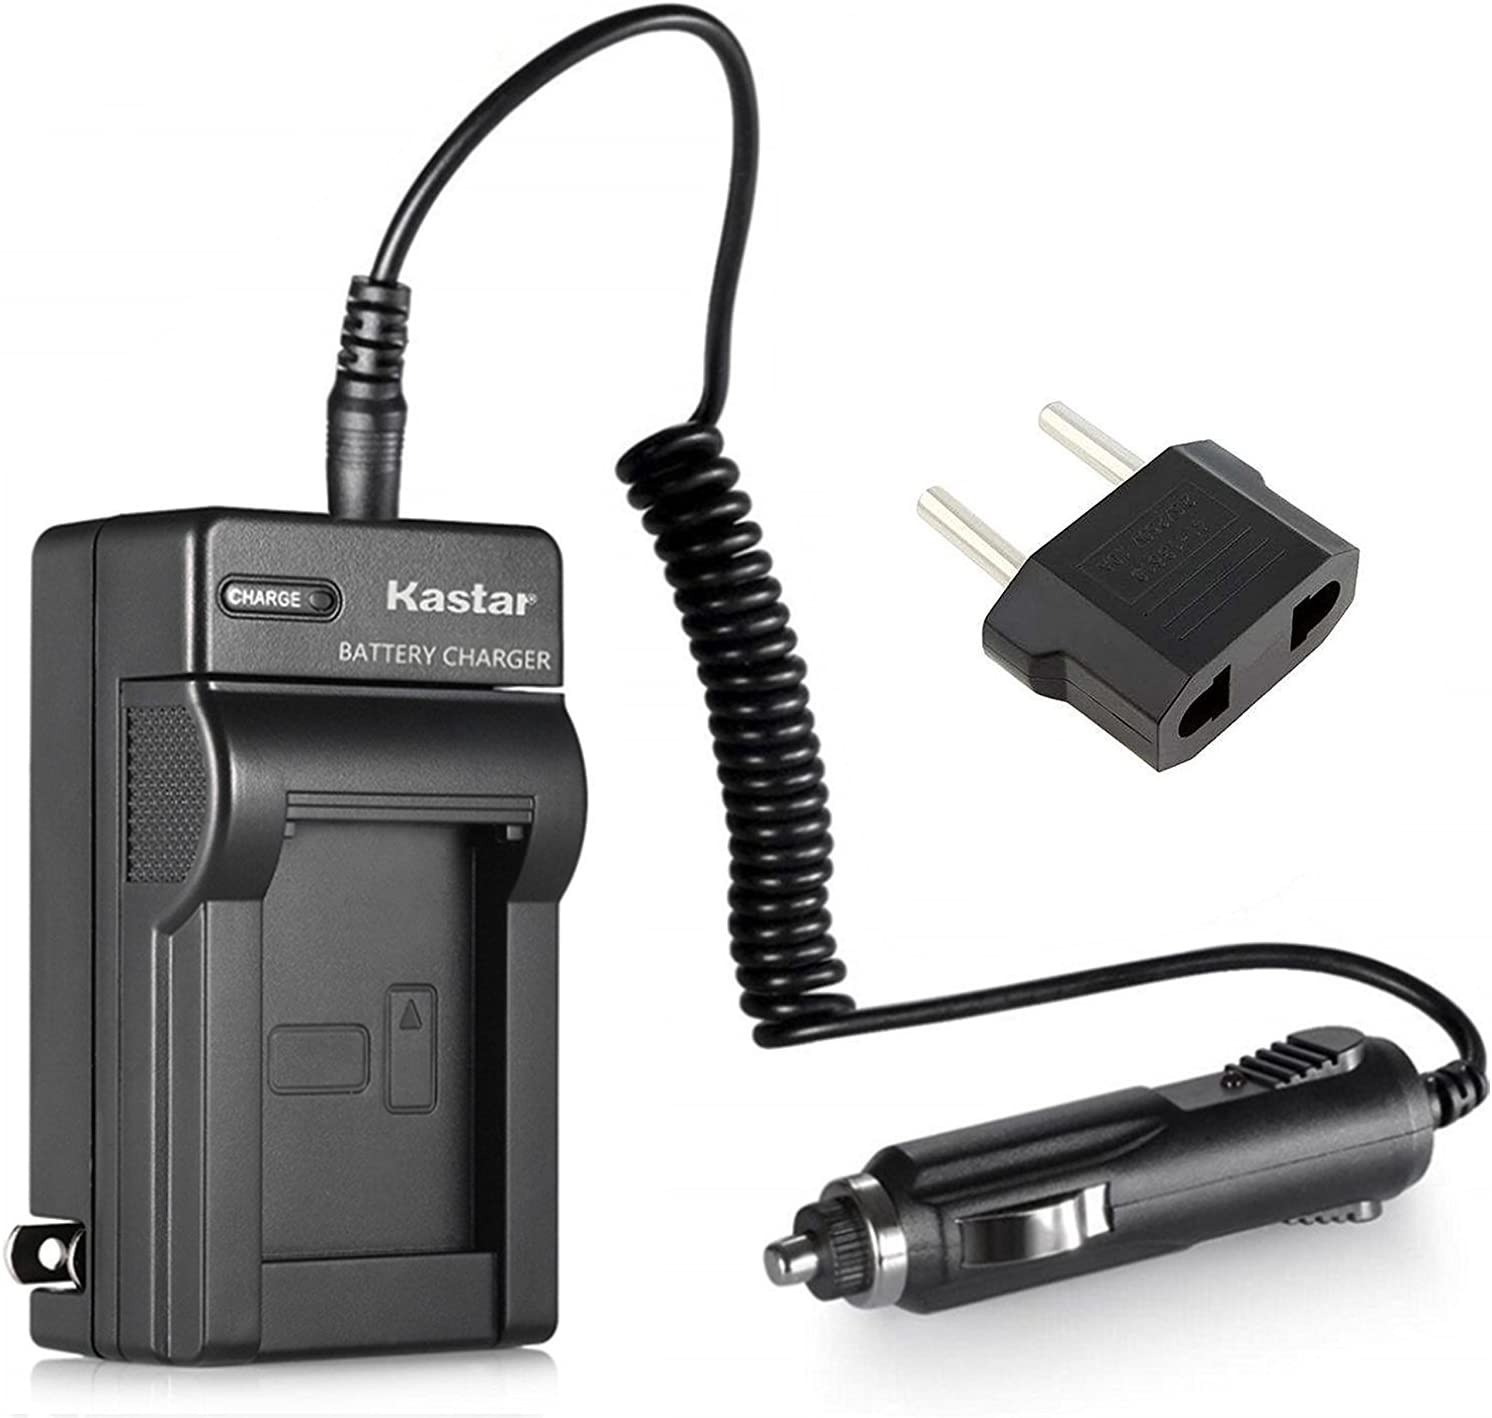 Kastar Compact Battery Charger Set and C for Nikon EN-EL12 Online limited product NEW before selling ☆